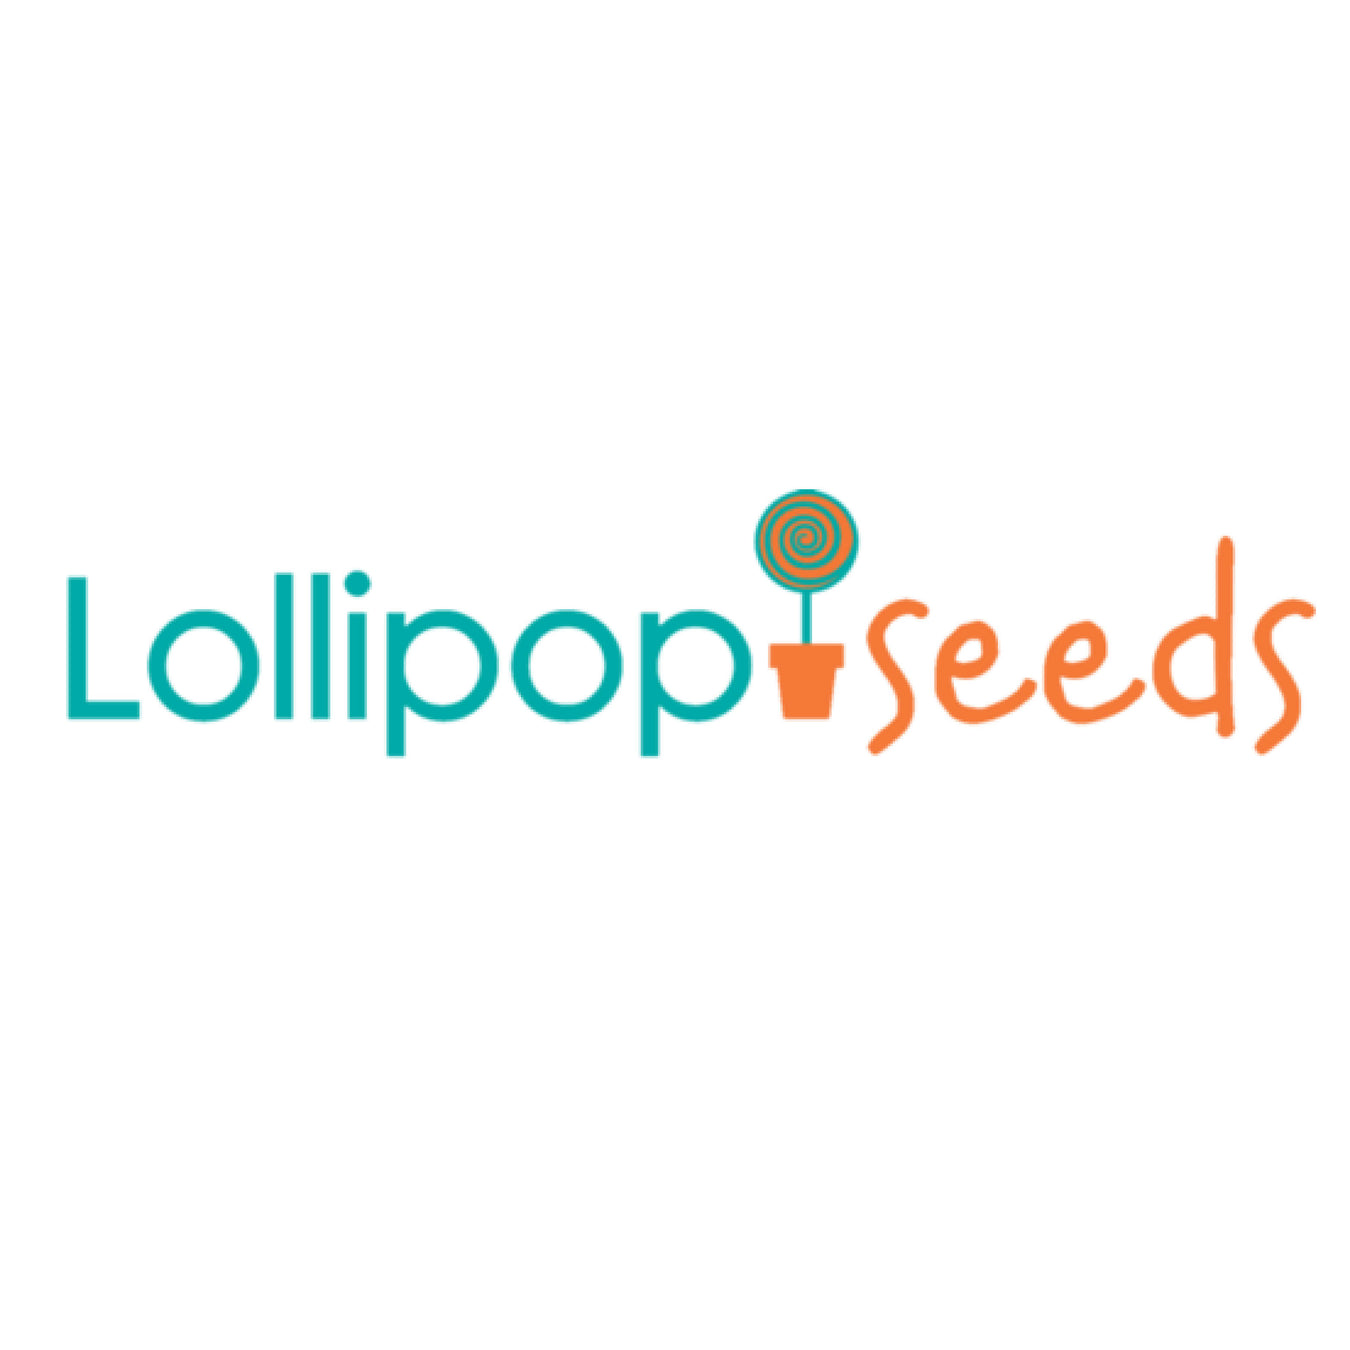 Support Lollipop Seeds